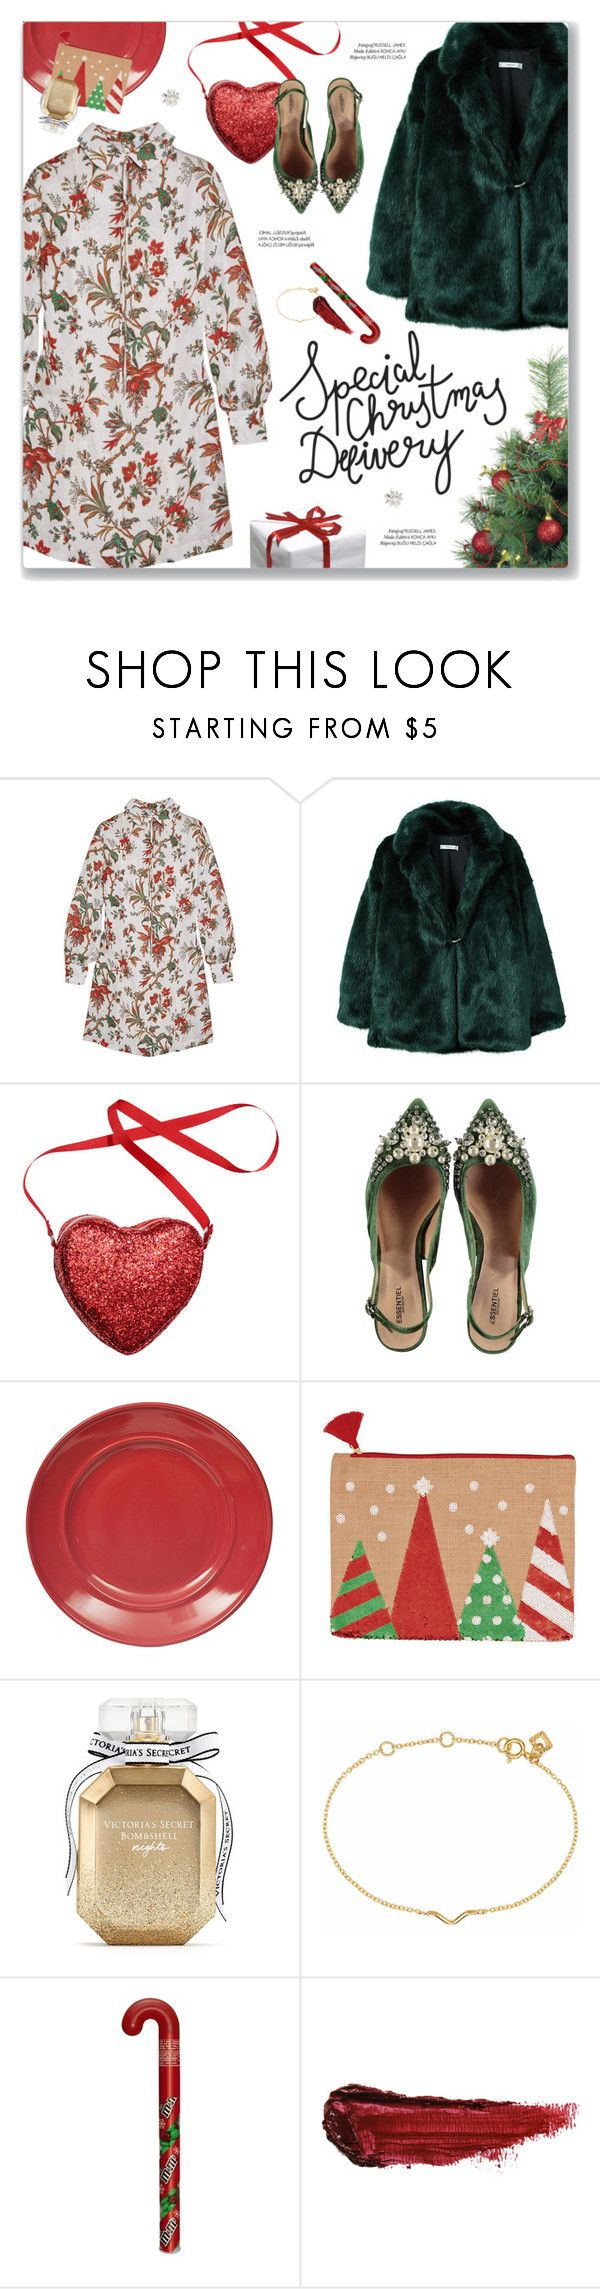 """""""#PolyPresents: Party Dresses"""" by blendasantos ❤ liked on Polyvore featuring McQ by Alexander McQueen, MANGO, xO Design, Victoria's Secret, Maya Magal, By Terry, contestentry and polyPresents"""